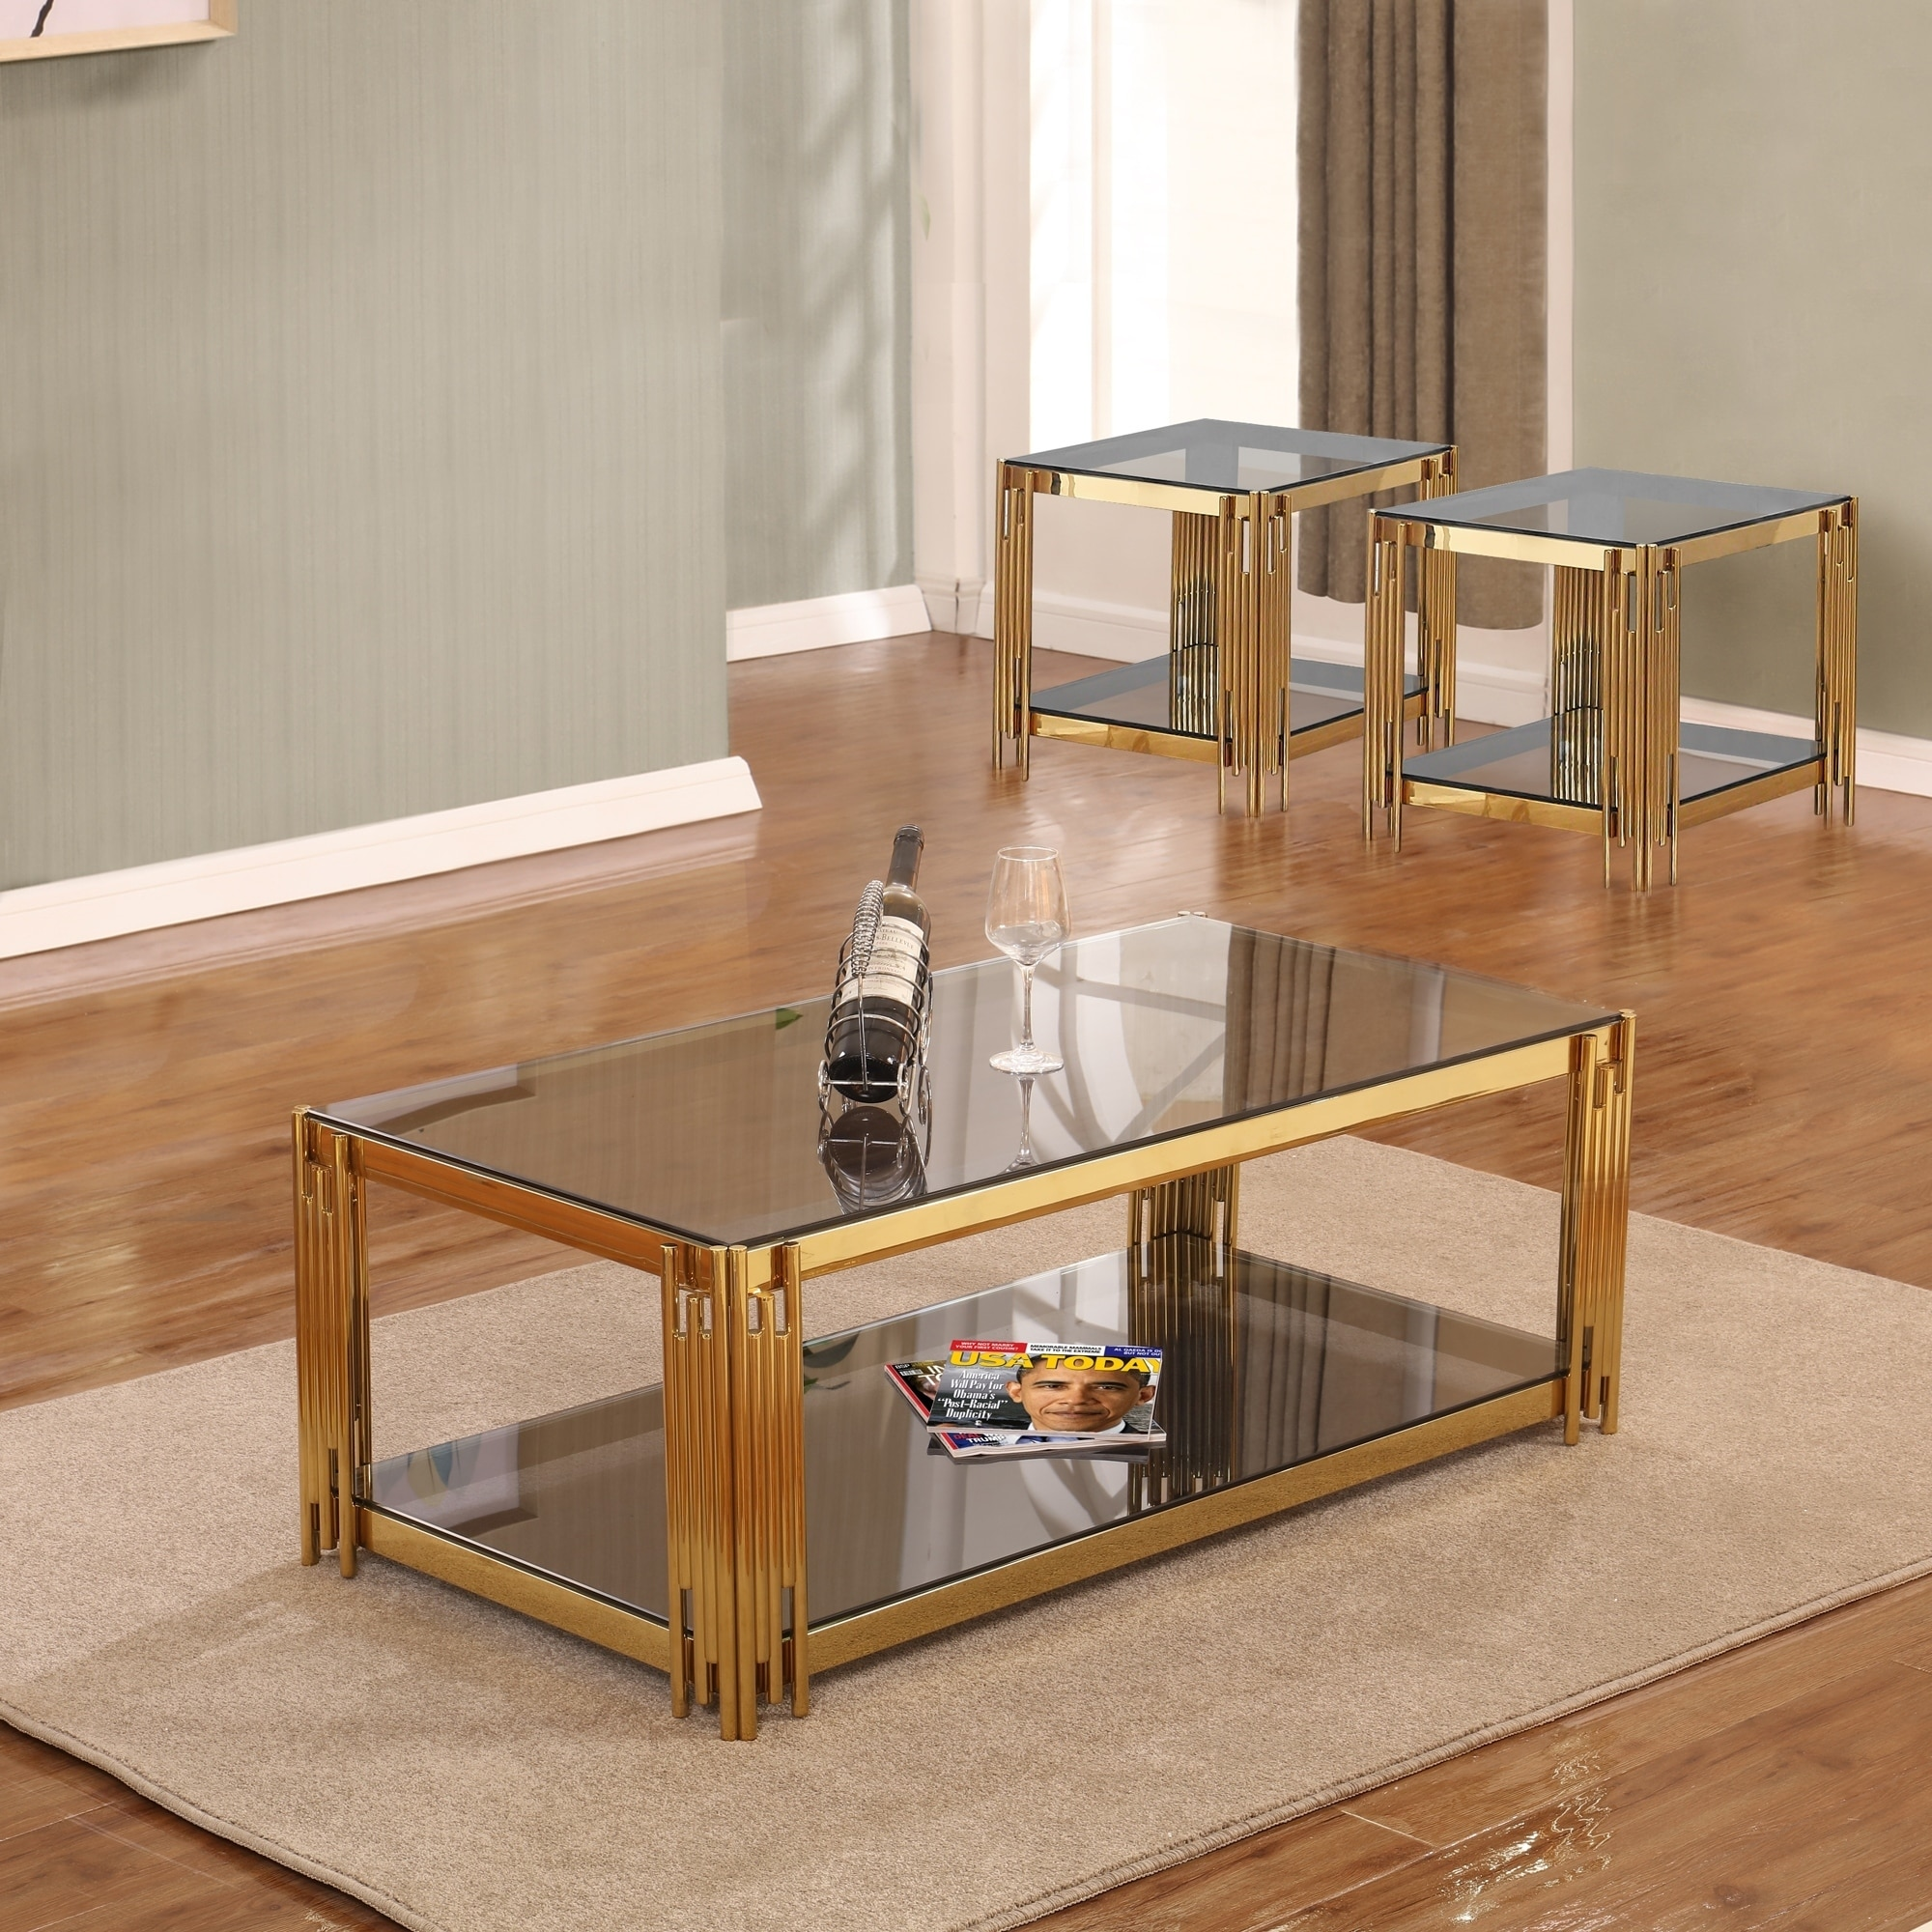 3 Piece Glass Top Coffee Table Sets.Best Quality Furniture 3 Piece Glass Top Coffee And End Table Set